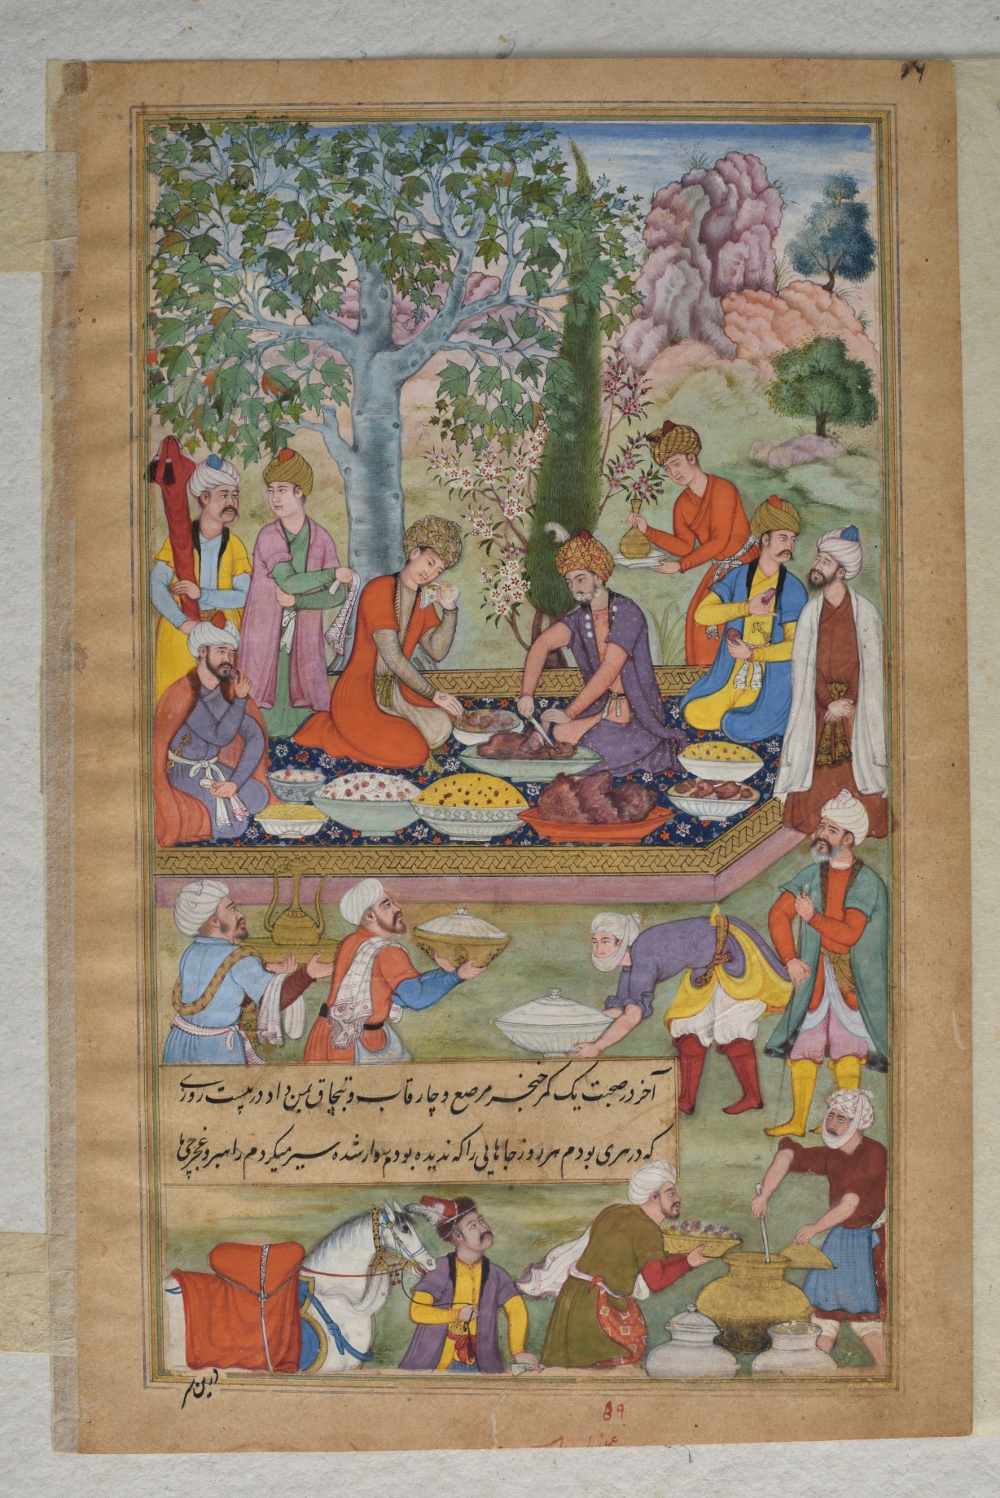 A Safavid prince  - Attributed to Muhammad QasimInk, opaque watercolour and gold on paperAbout 1650Isfahan, IranBritish Museum This painting depicts a royal picnic in which a Safavid prince is attended by members of his court. Musicians play while youths serve wine in a night-time scene, surrounded by mountains, trees and a river. The prince, identified by his fur-lined jacket, may be Shah 'Abbas II (reigned 1642–66). A contemporary of the Mughal Emperor Shah Jahan, Shah 'Abbas II ascended the throne when he was only ten-years old. Based in Isfahan, the Safavids were one of the most powerful dynasties of Iran.